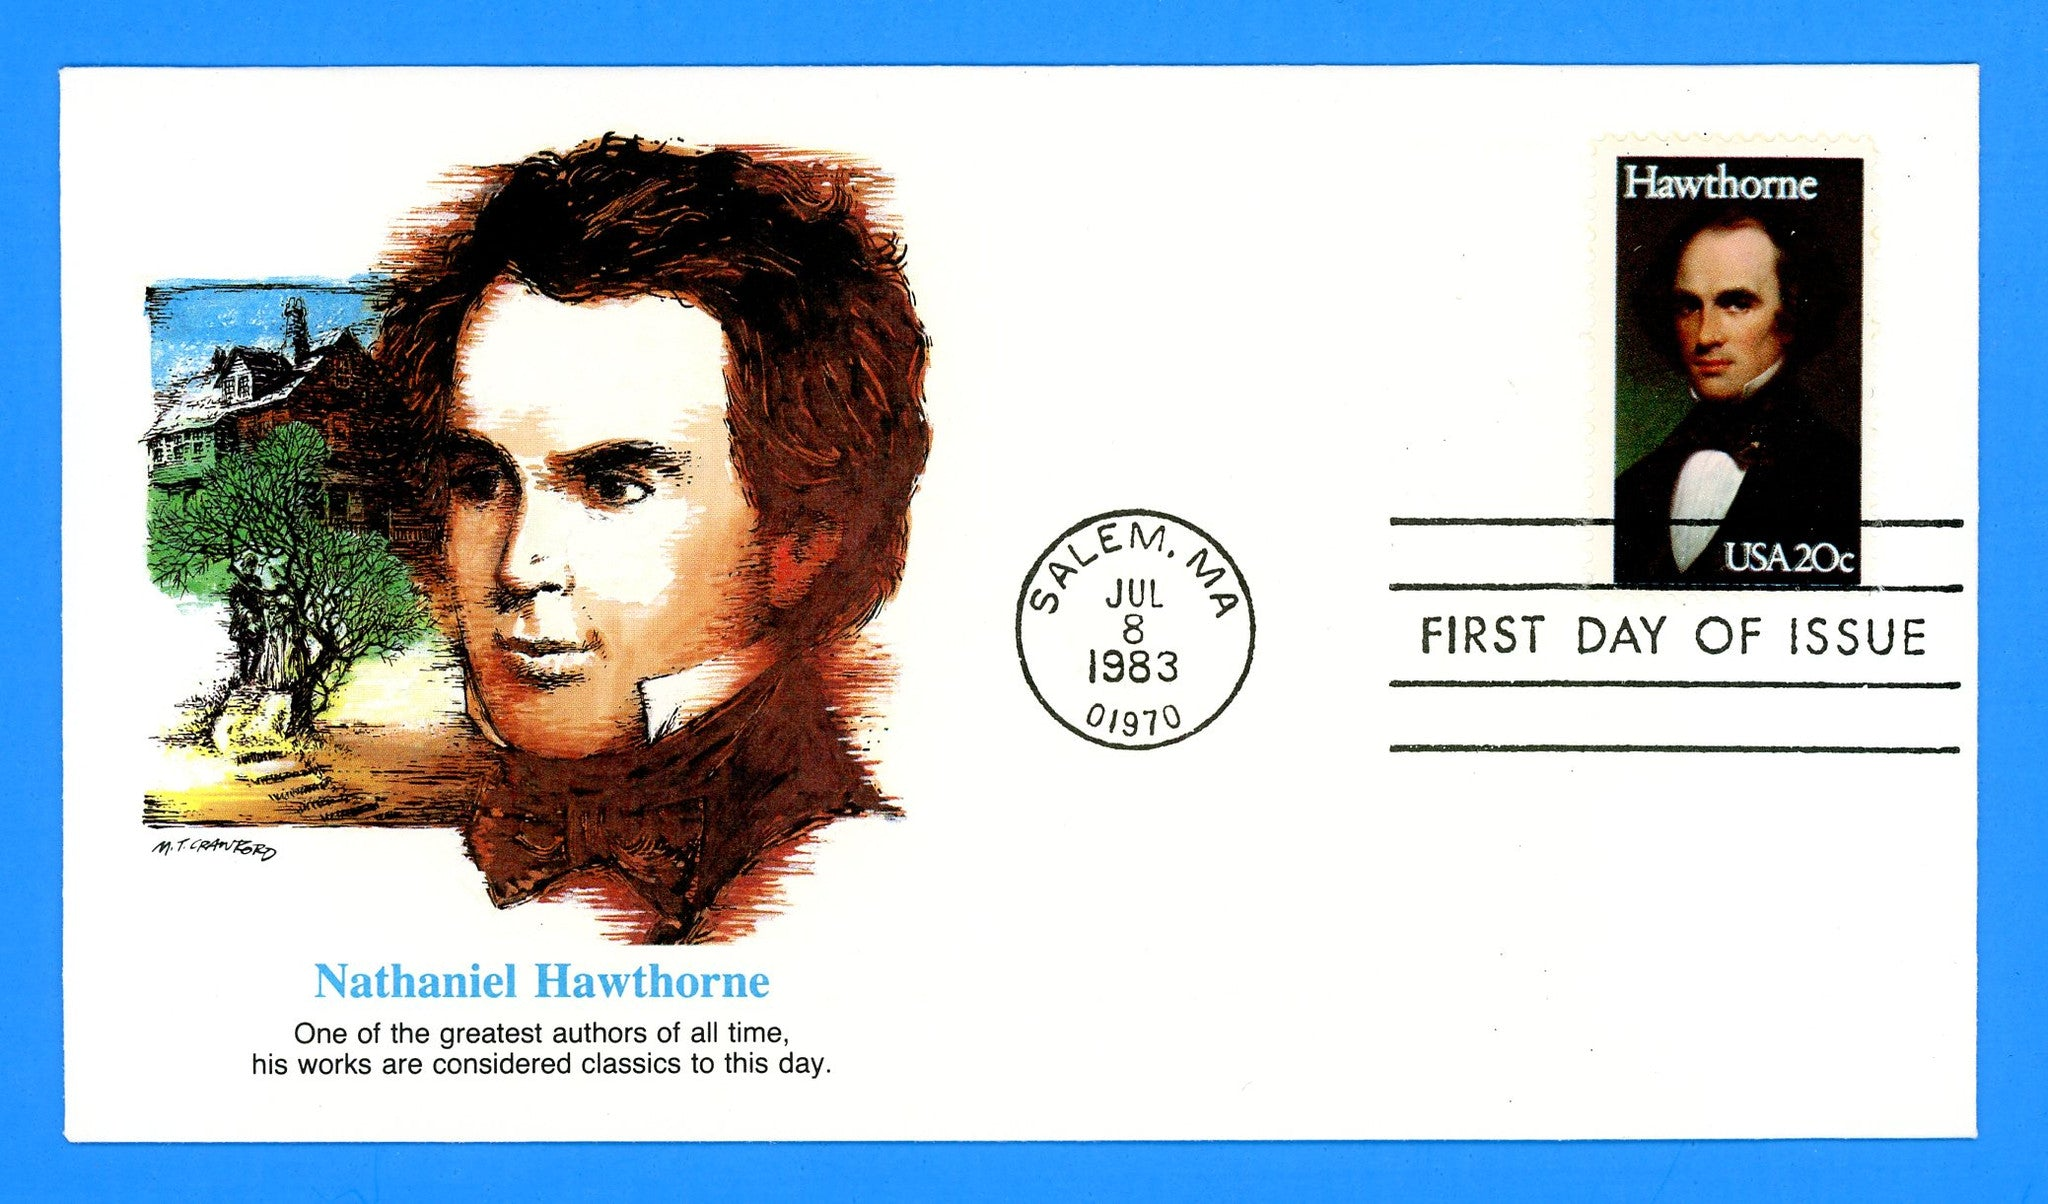 Nathaniel Hawthorne First Day Cover by Fleetwood